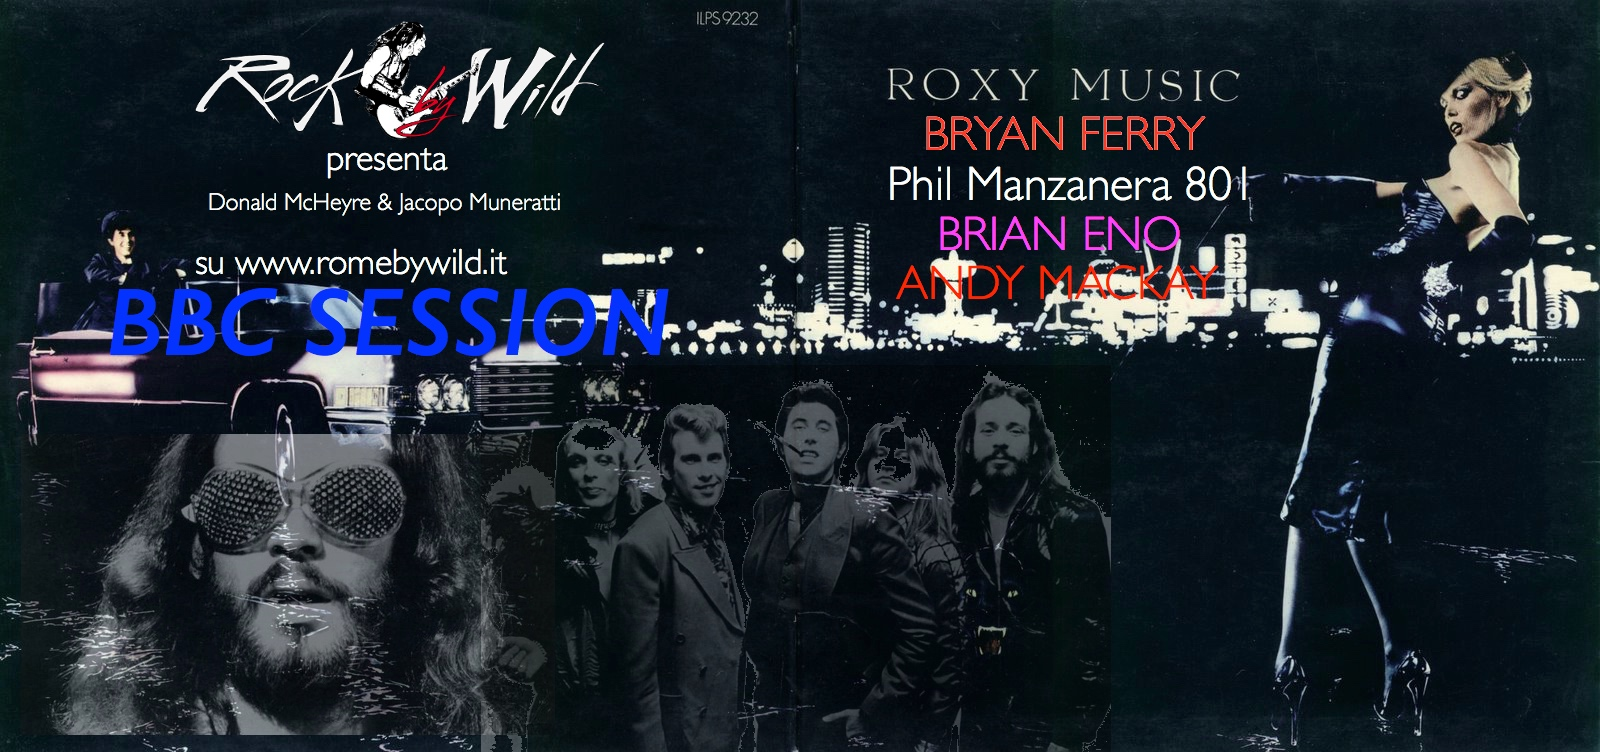 BBC session 7° Puntata: Roxy Music